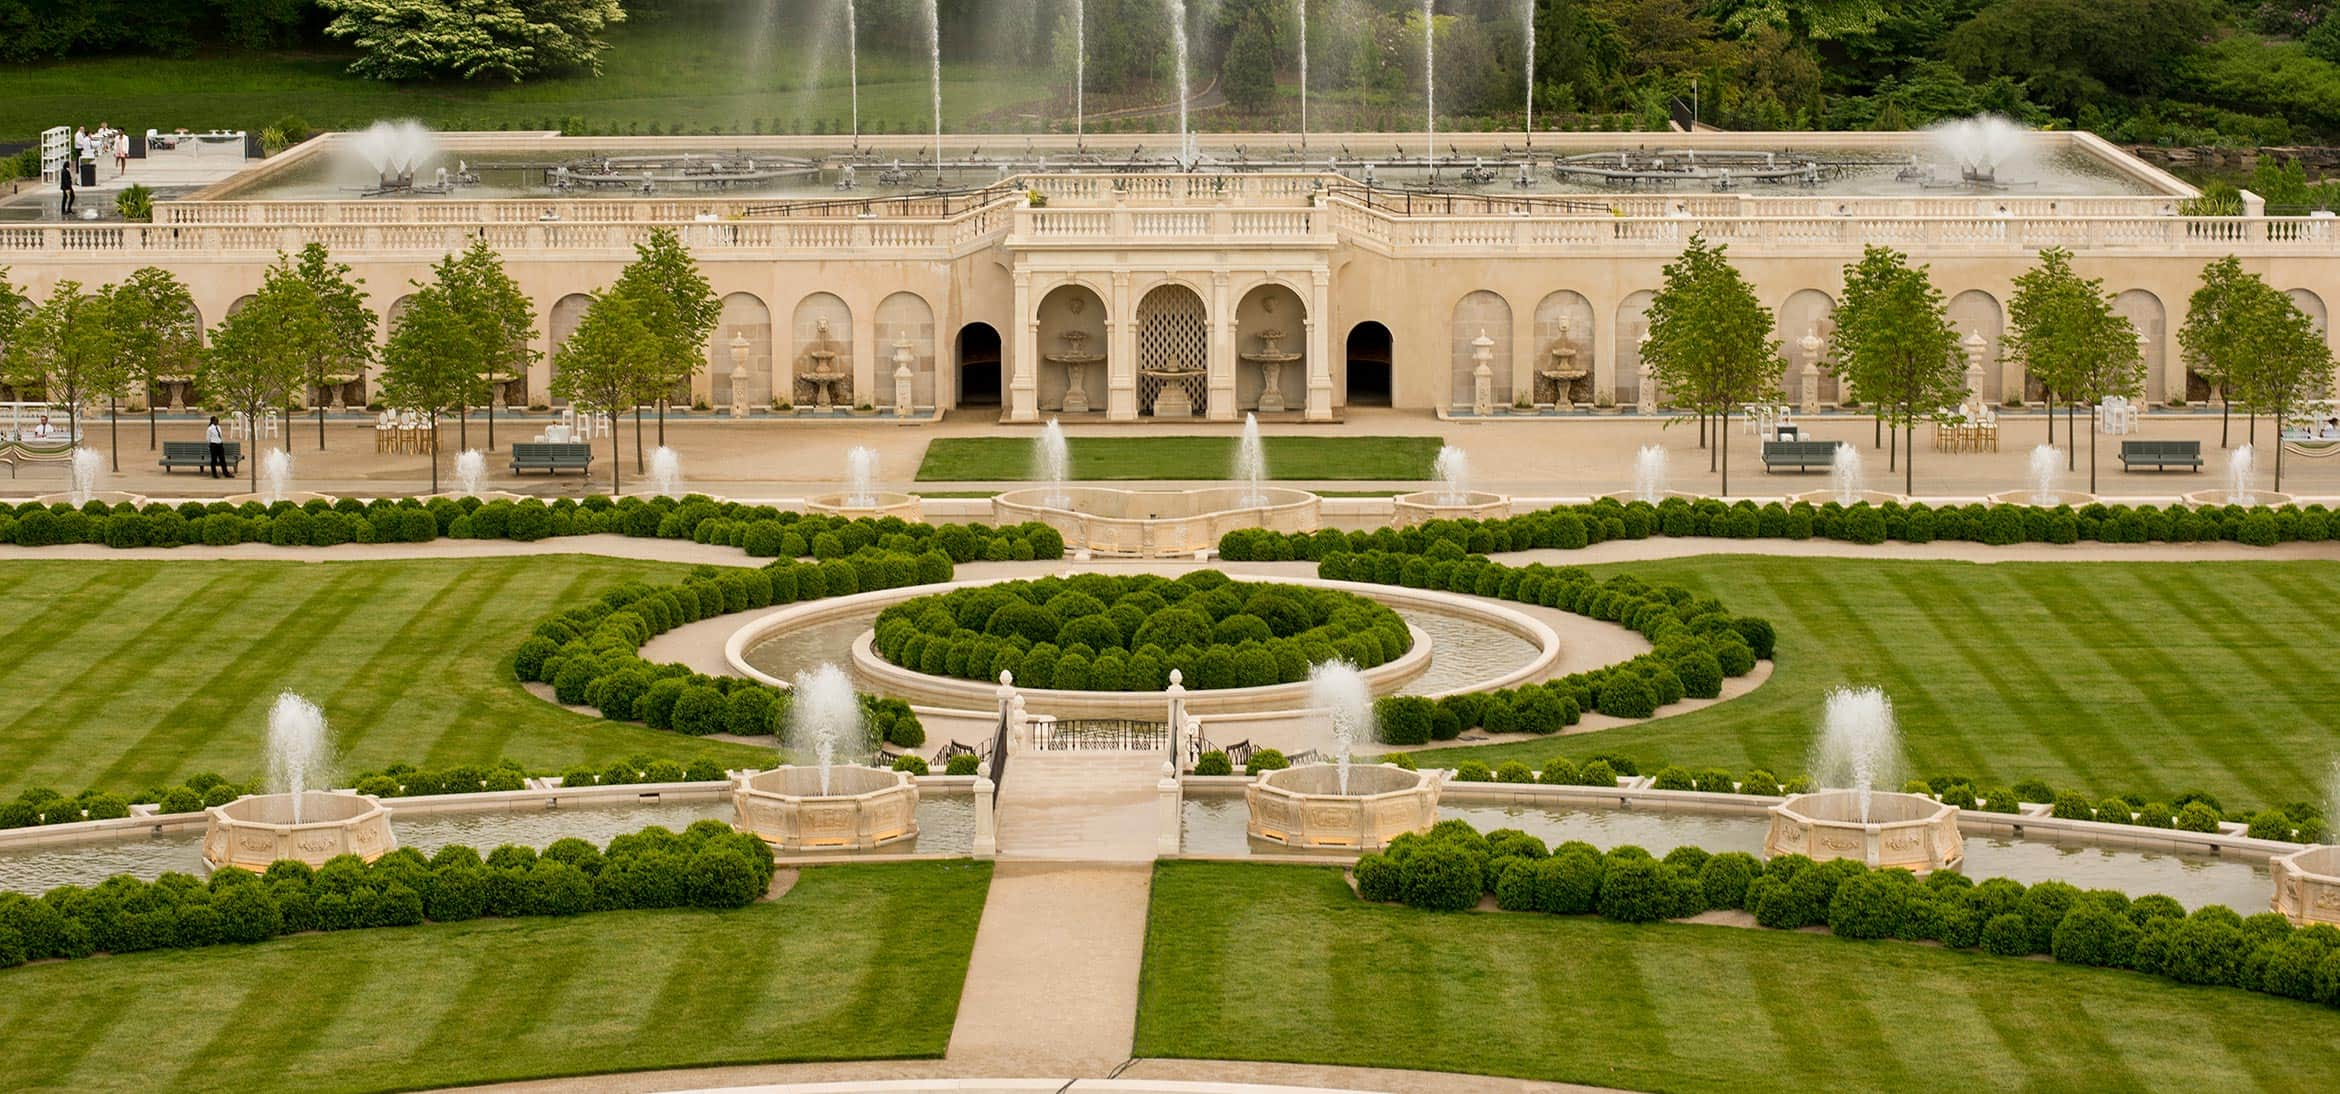 Immaculate gardens and fountains at Longwood Gardens